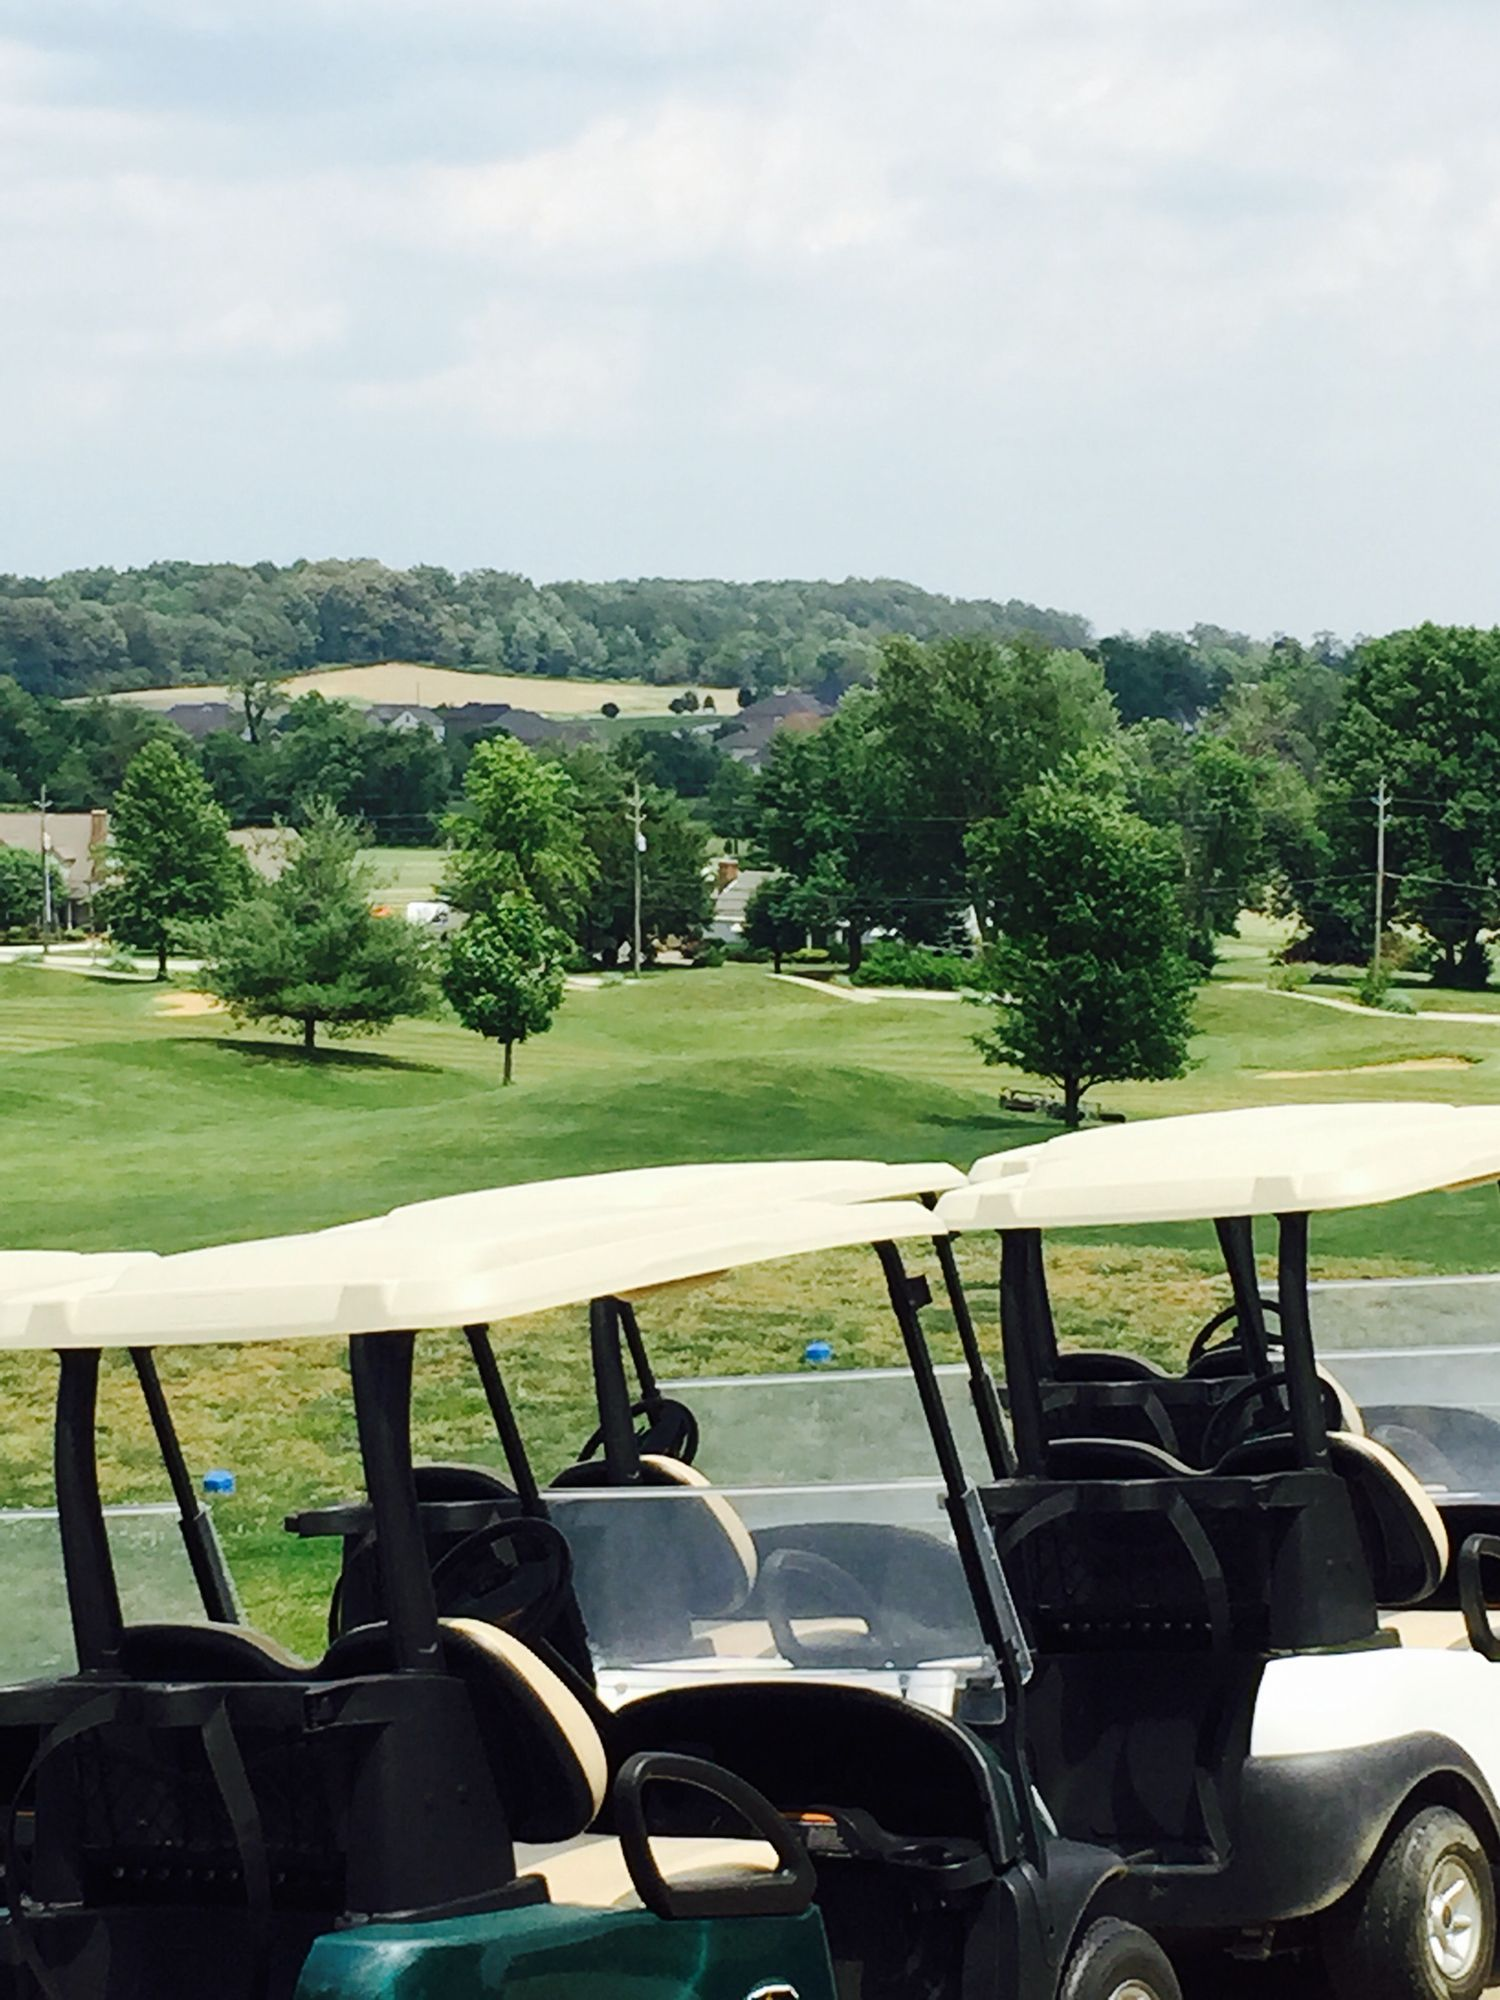 Golf Outing, June 12, 2015 Eagle Valley Golf Course 10350 Petersburgh, IN 47725 1(812)867-7888   #3rd #ward #evansville #indiana #amelcher